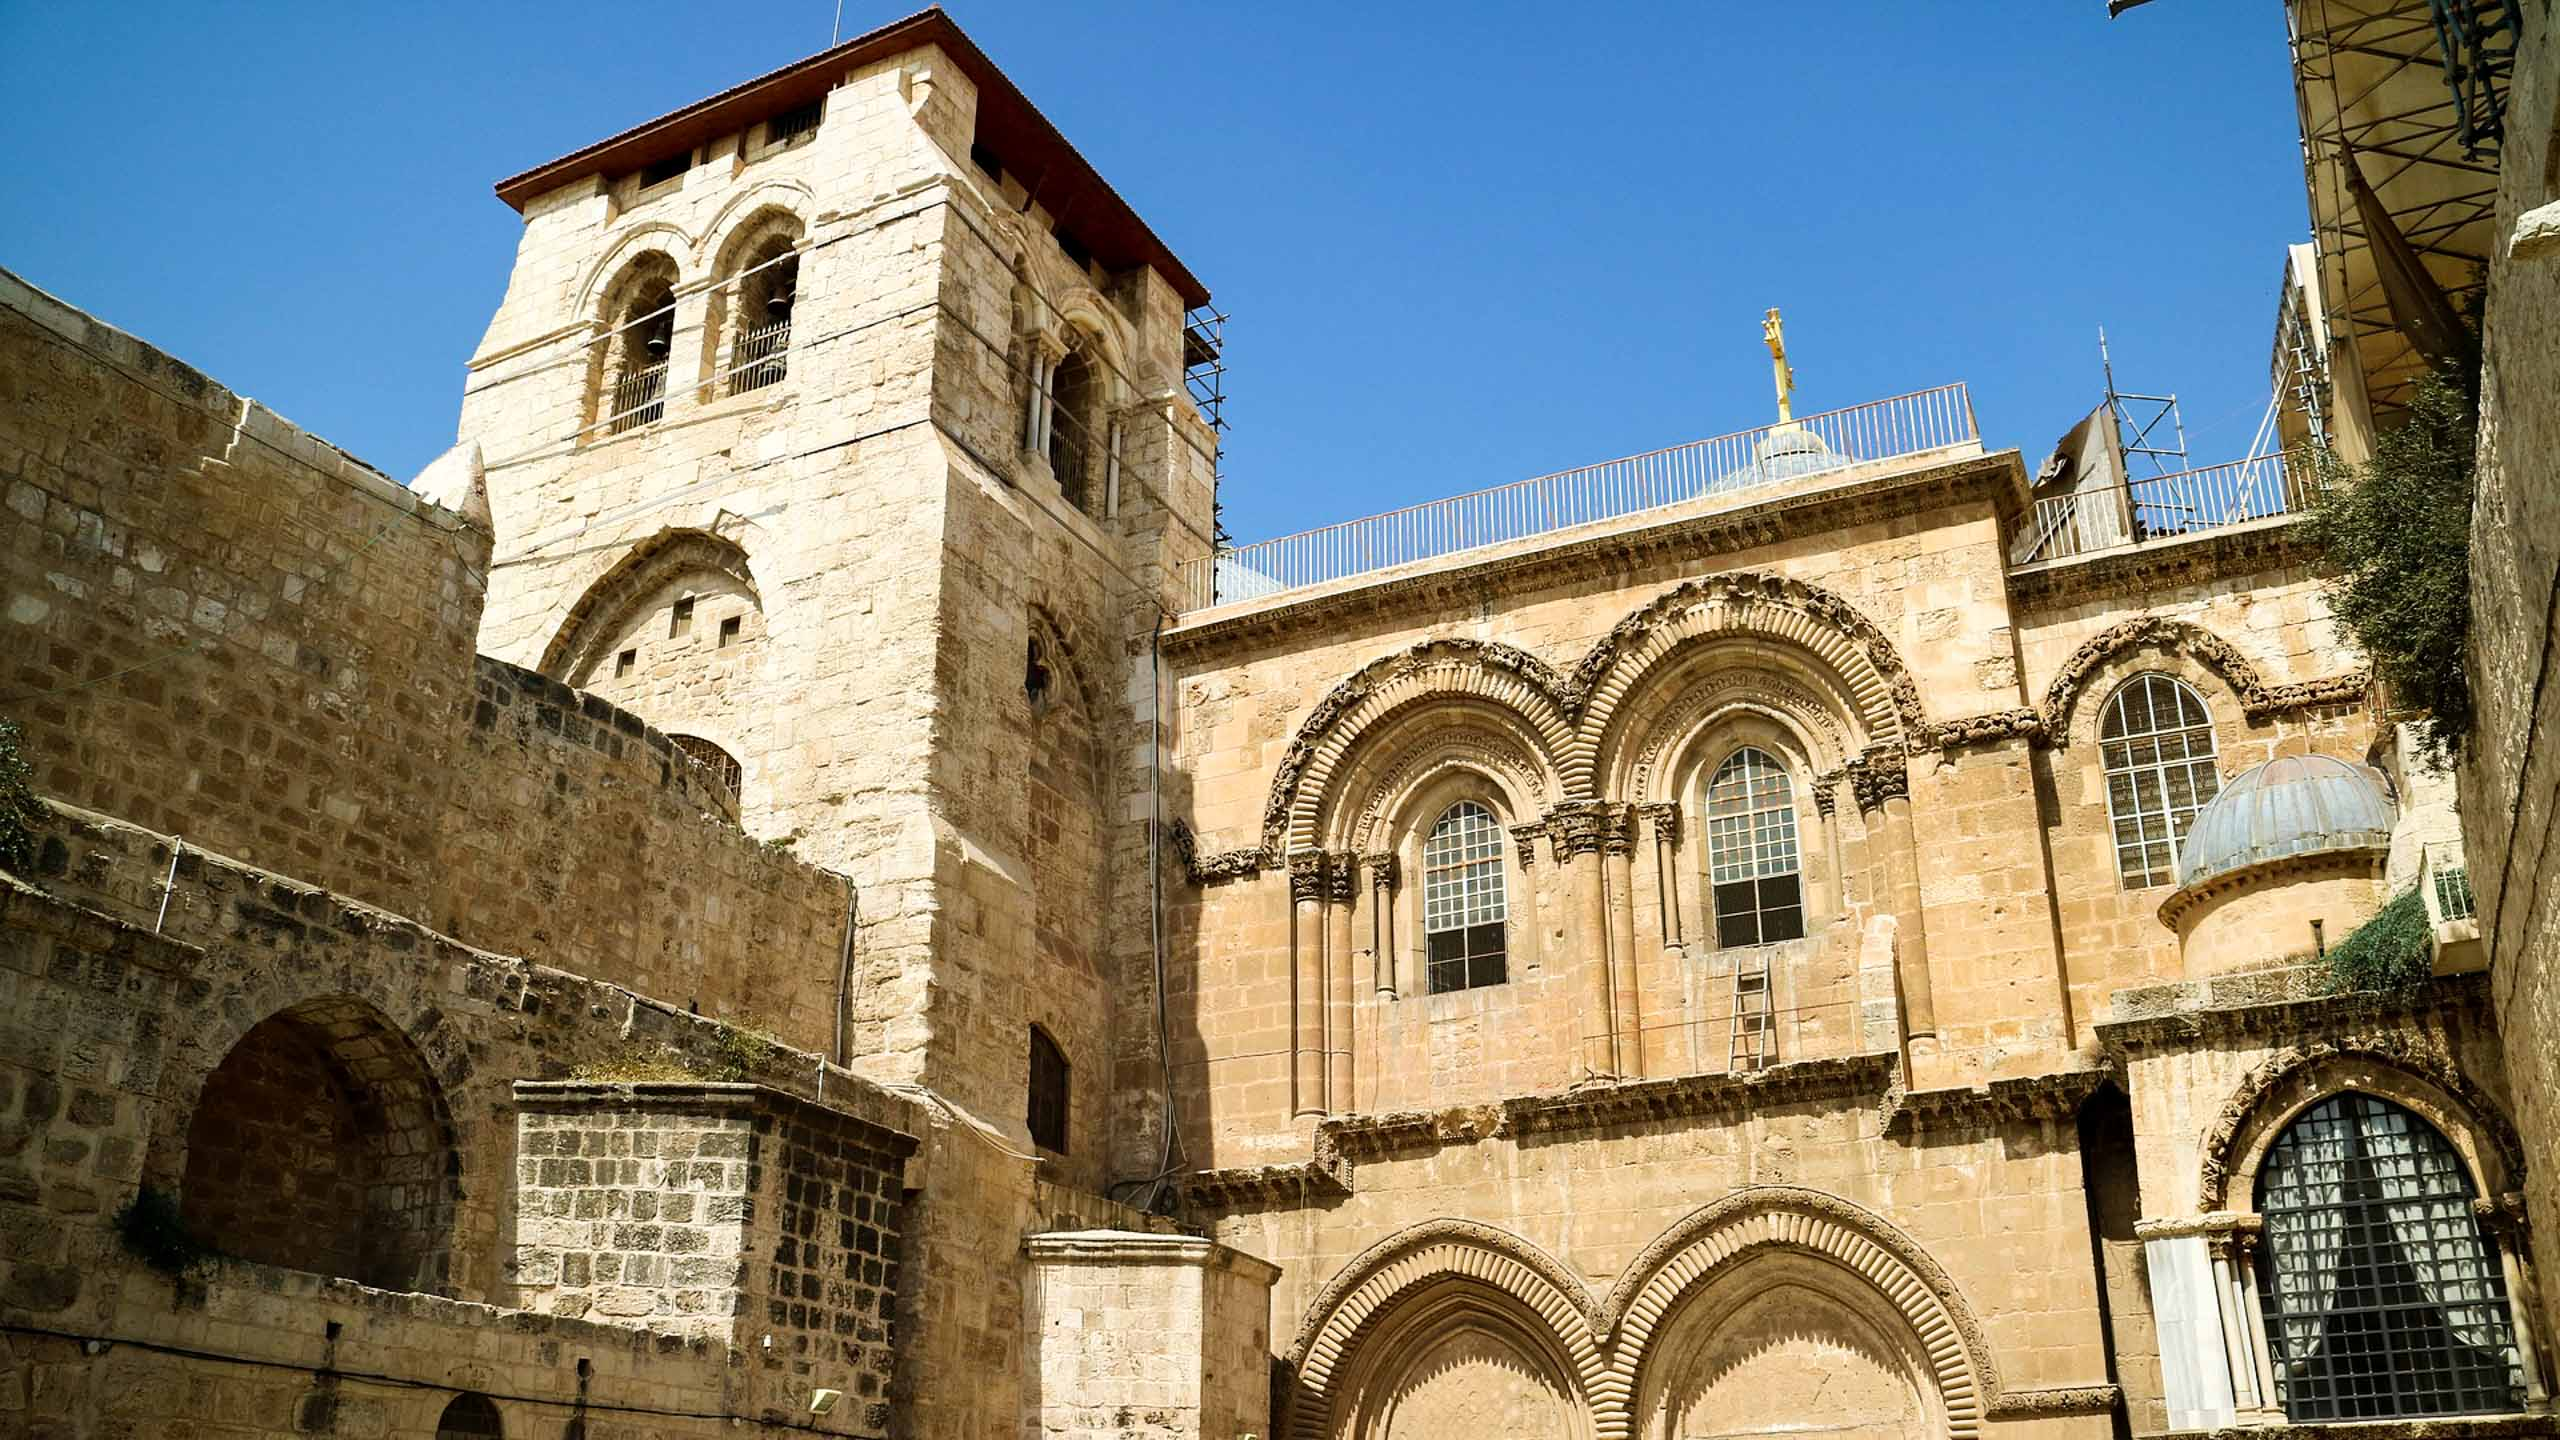 Israel Holy Sepulchre building